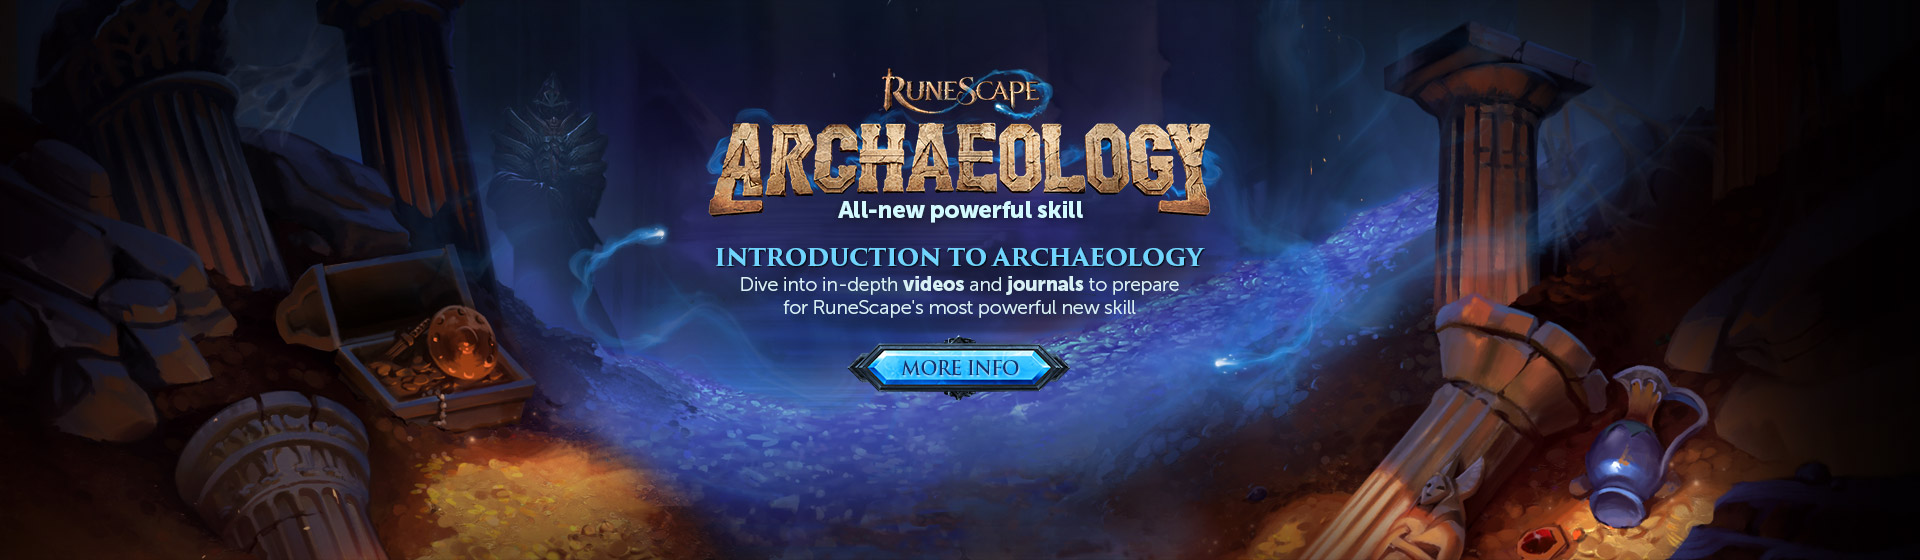 Archaeology-Overview